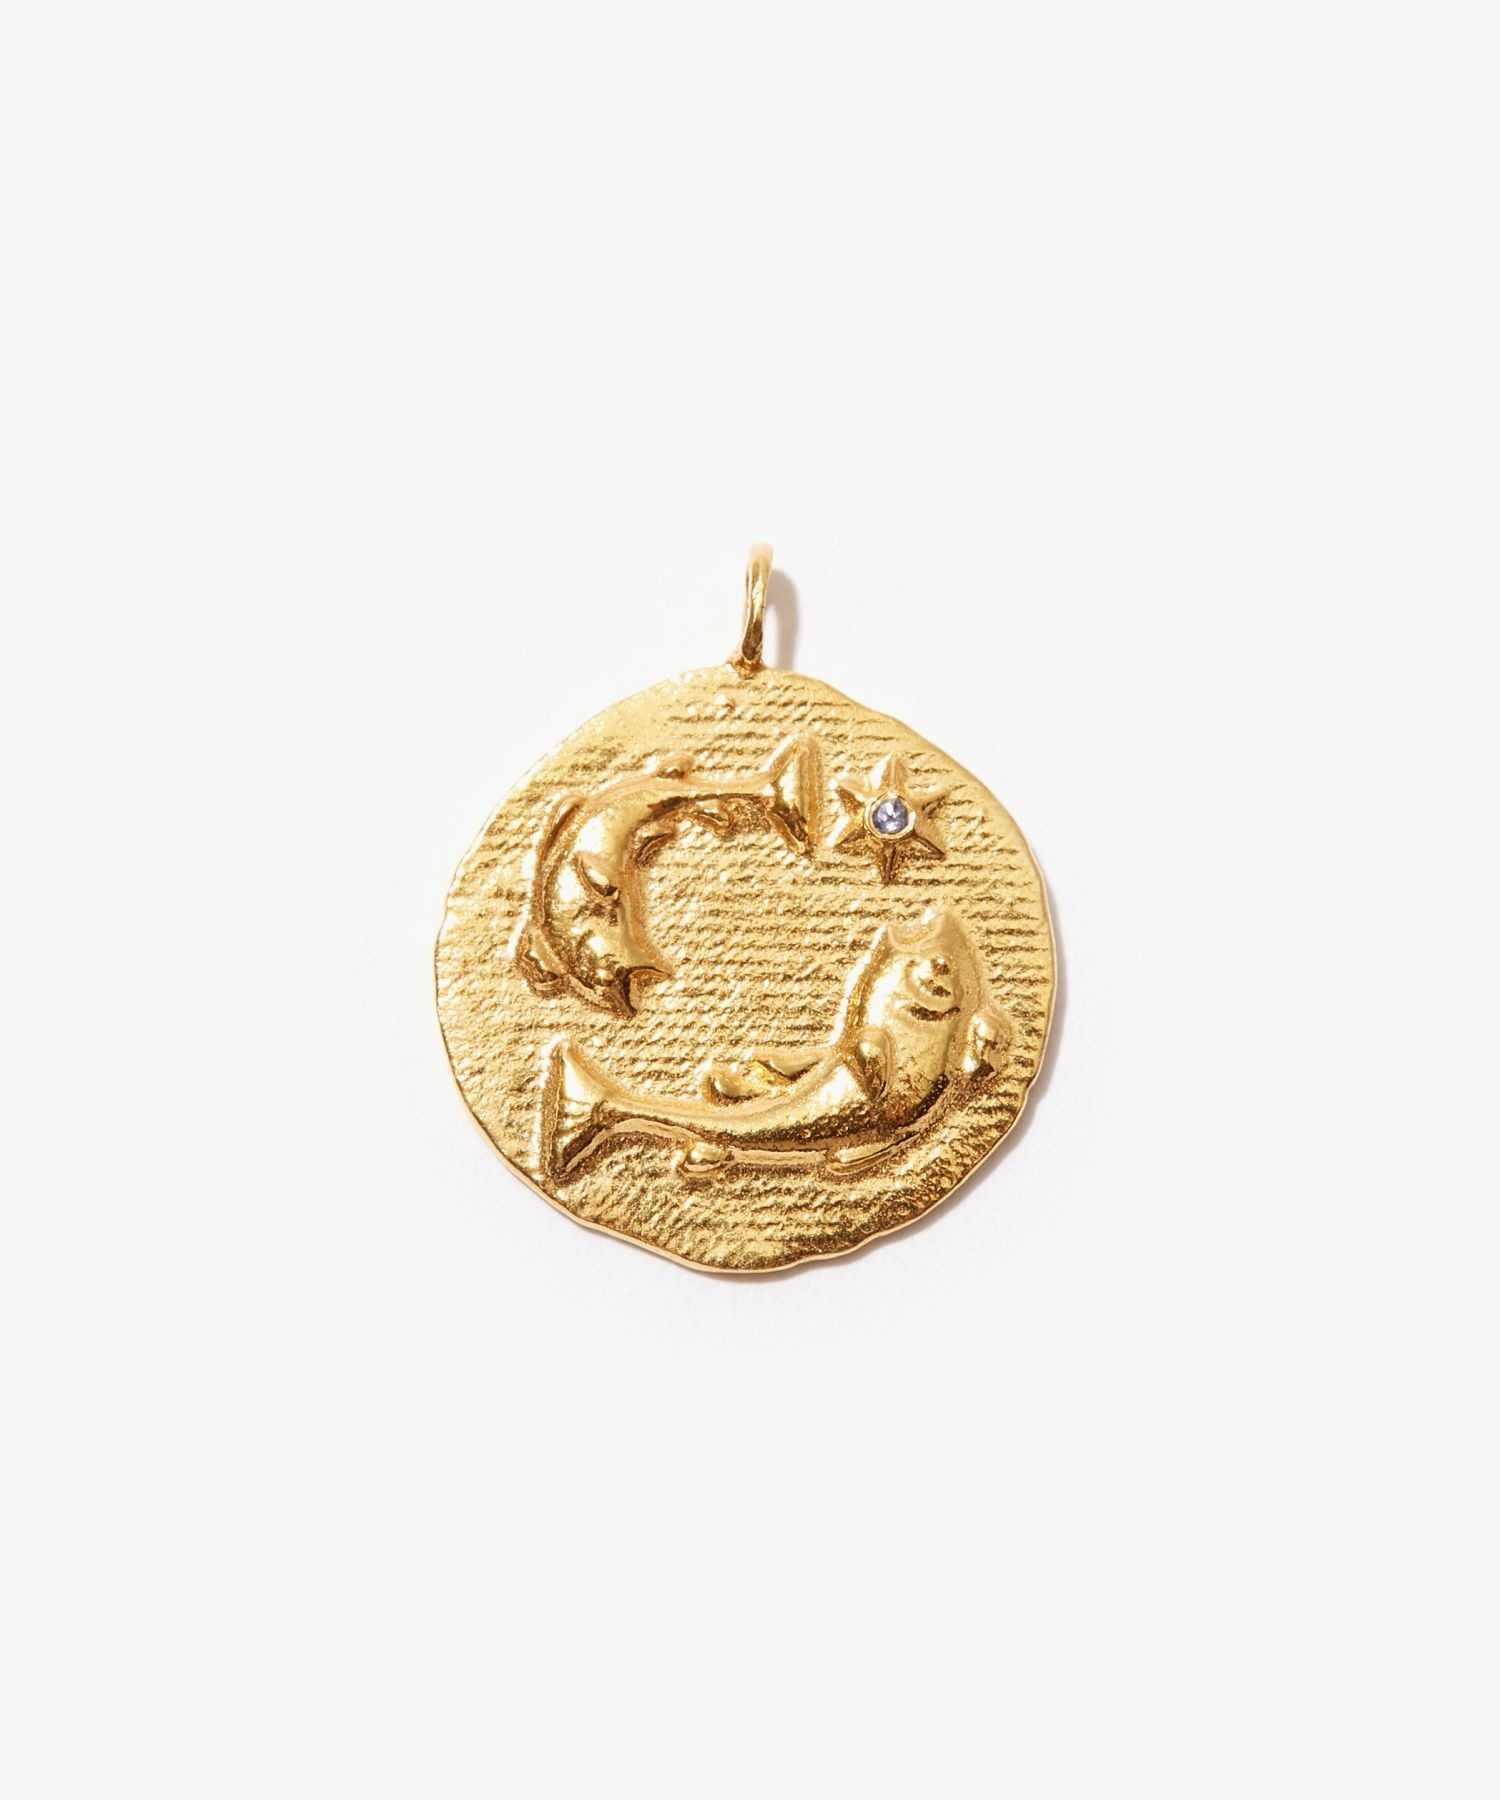 [constellation] Pisces big coin charm